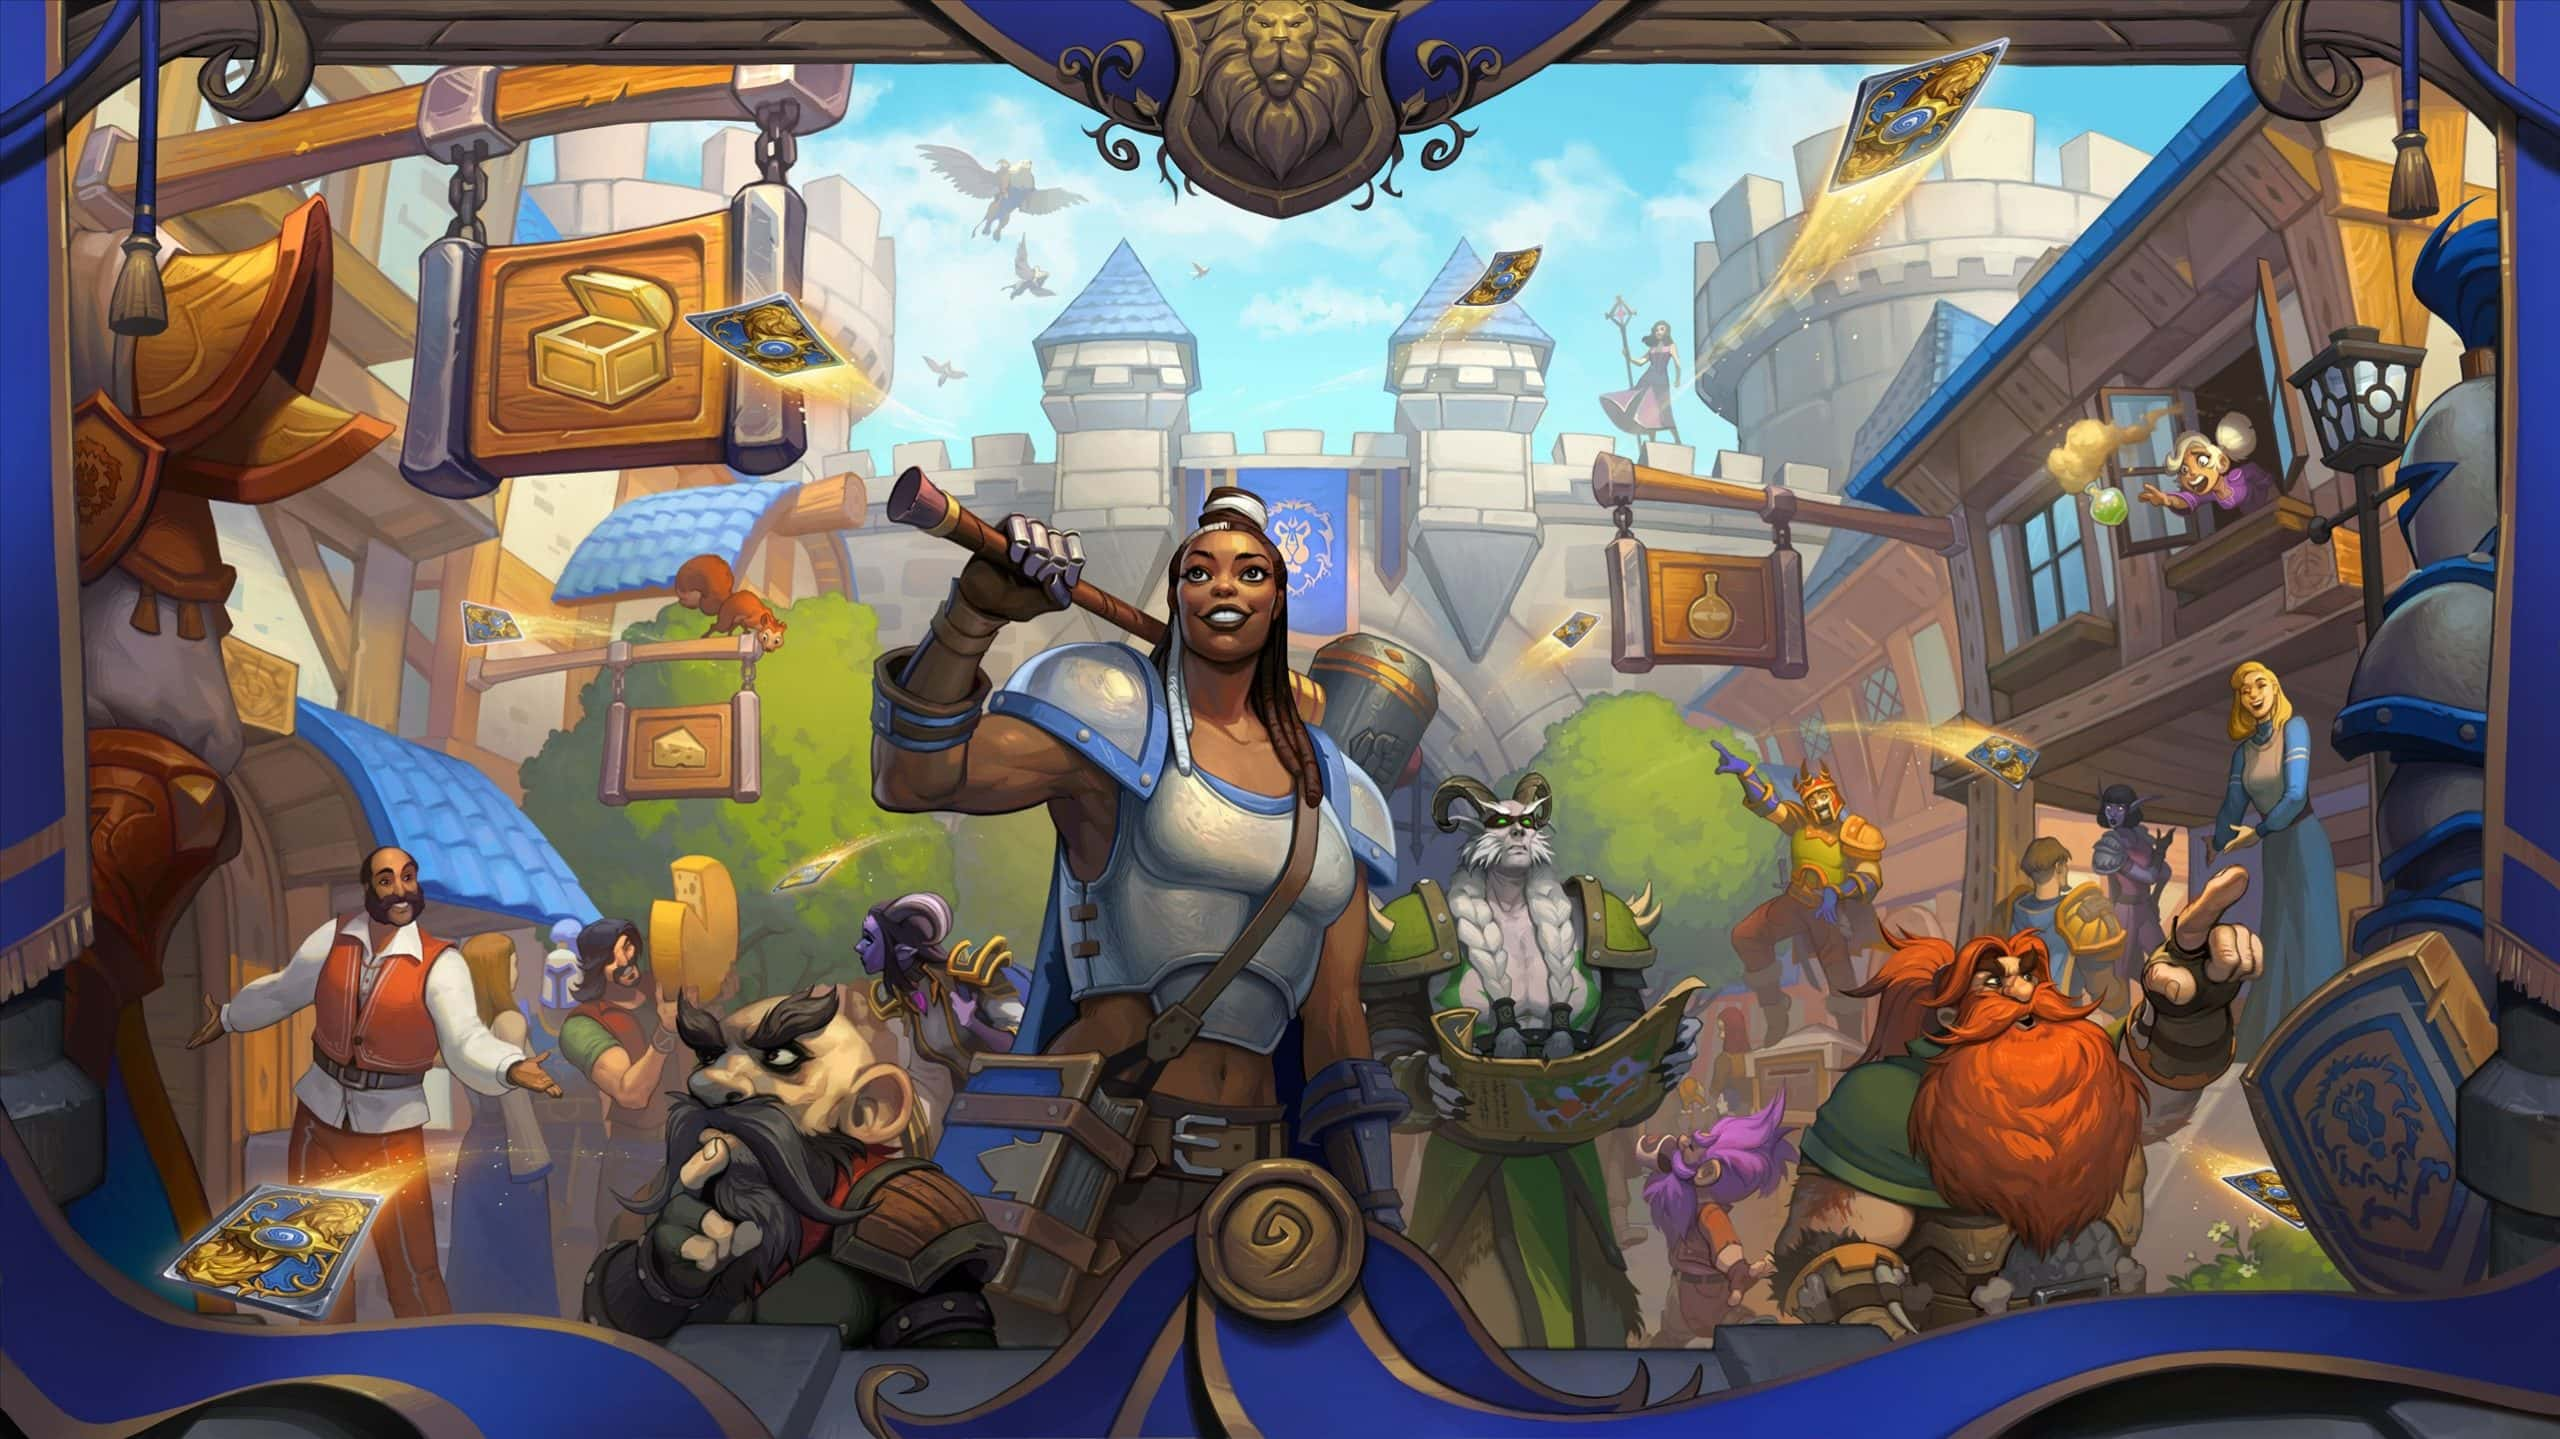 Hearthstone's United in Stormwind brings back Hero's quests and new concepts in gameplay